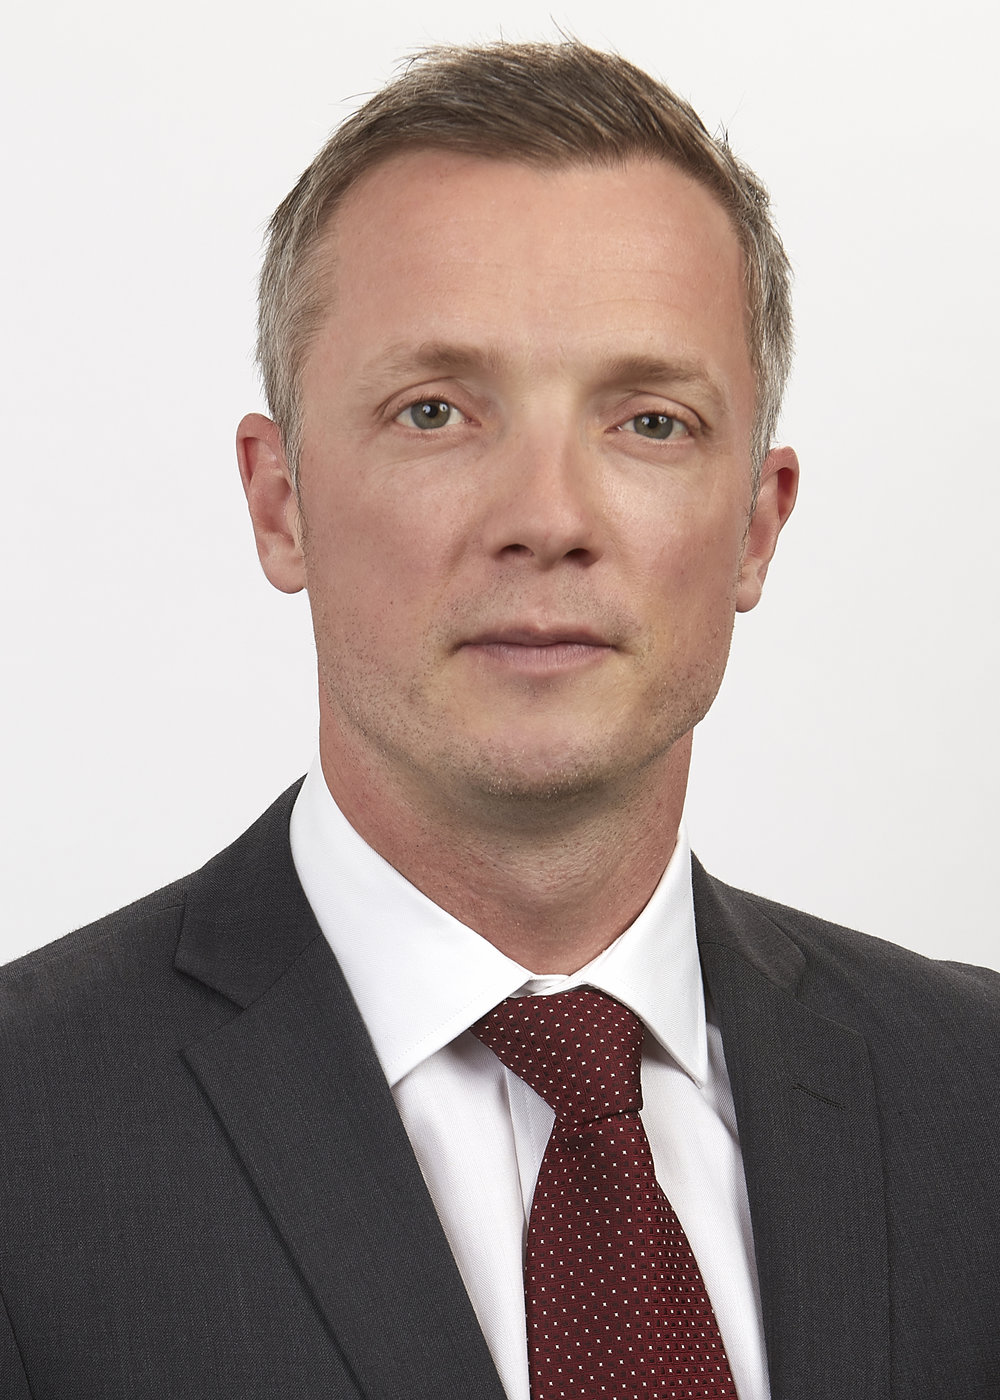 Mans Carlsson-Sweeny - Head of ESG Research, Ausbil Investment Management